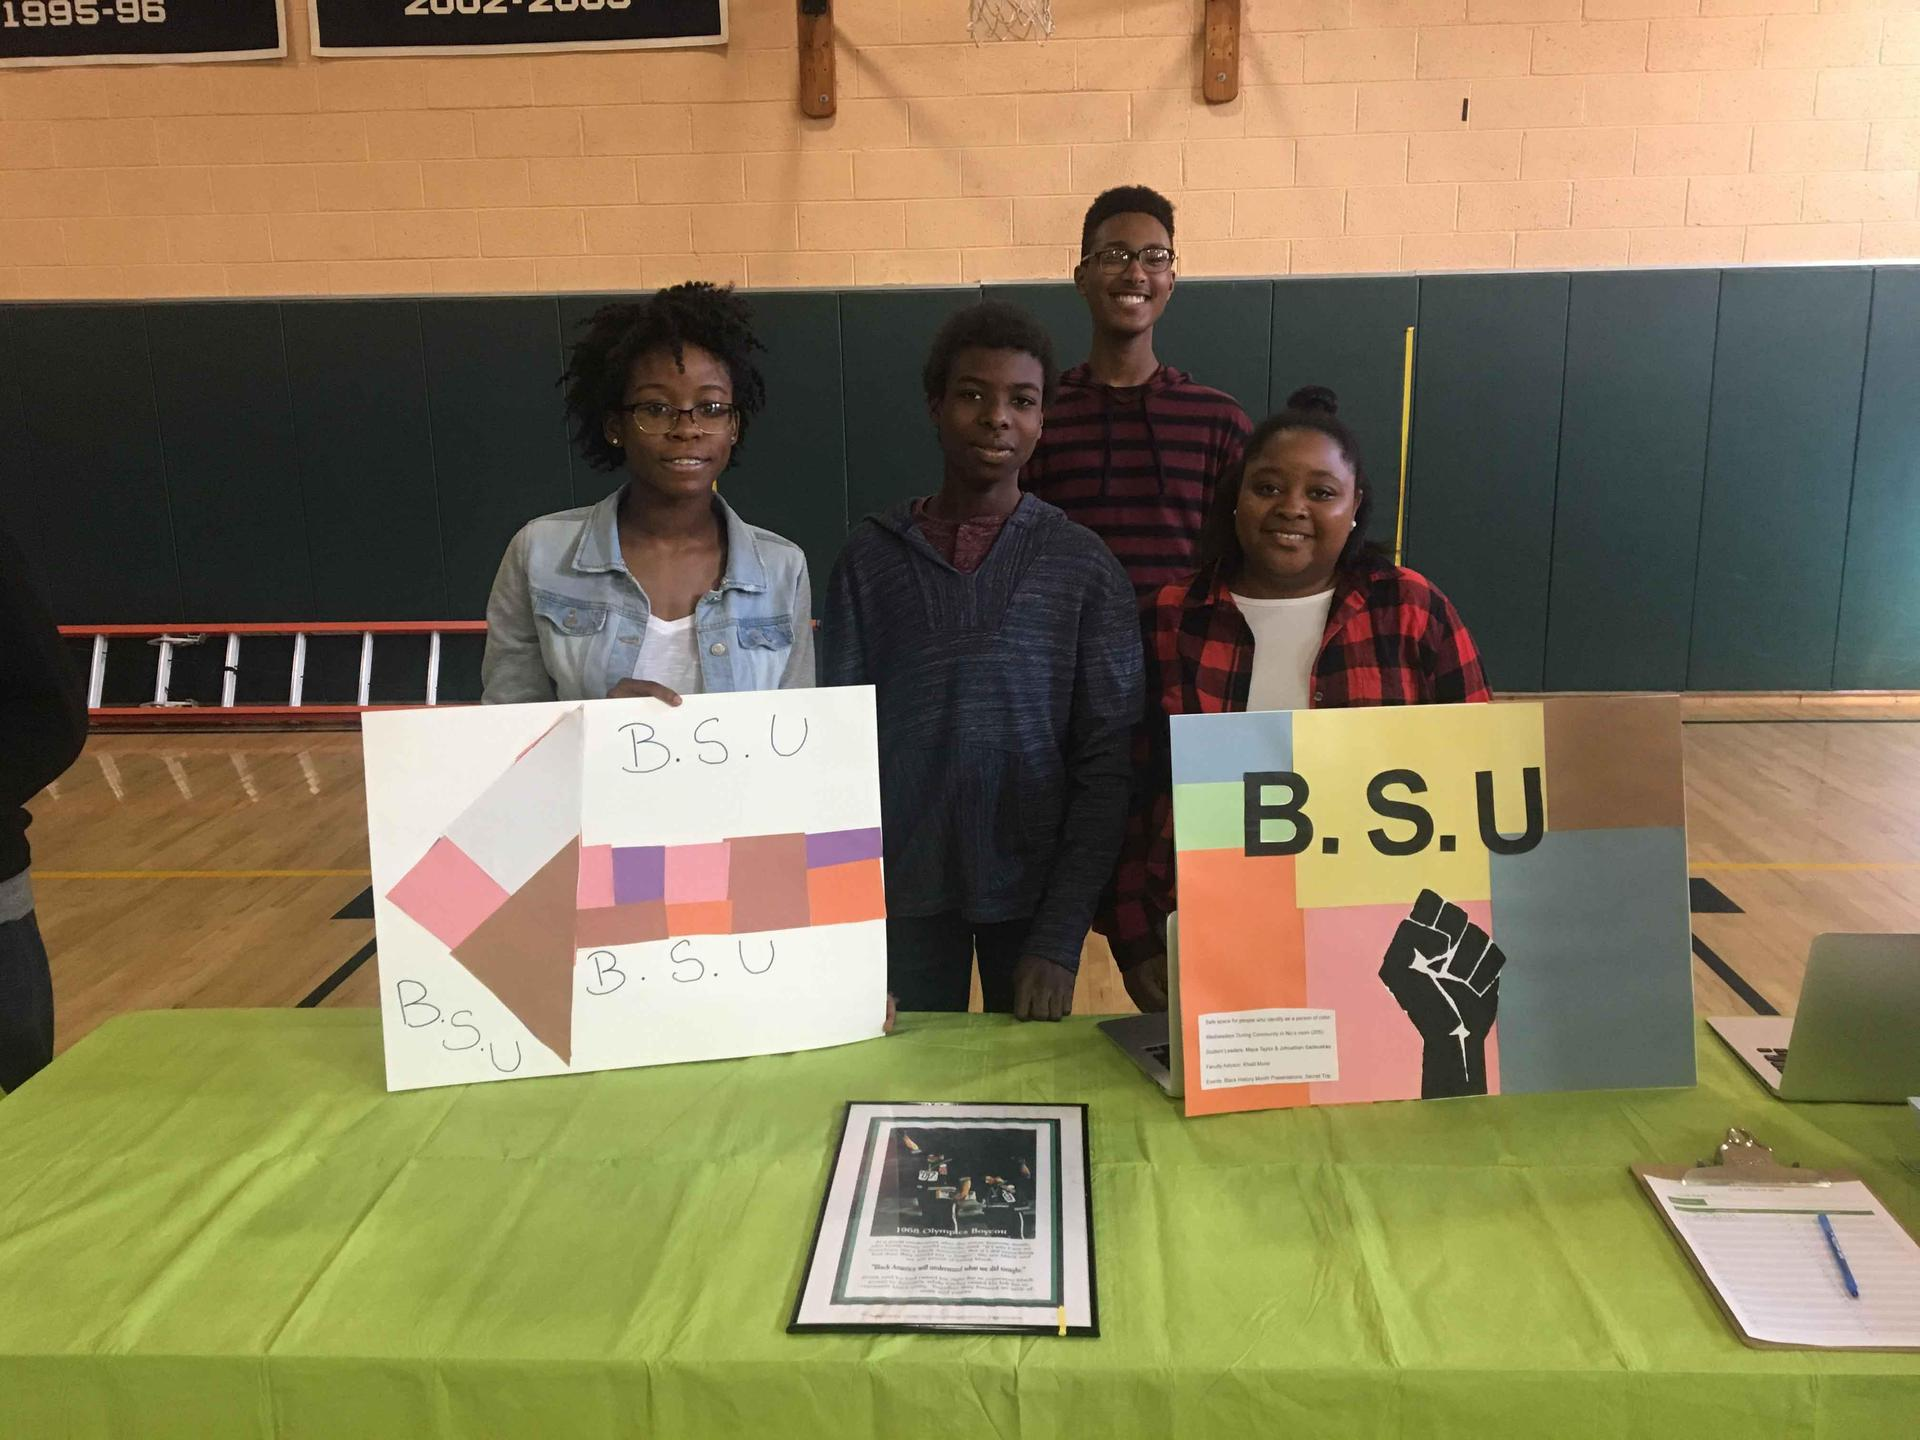 BSU - Black Student Union